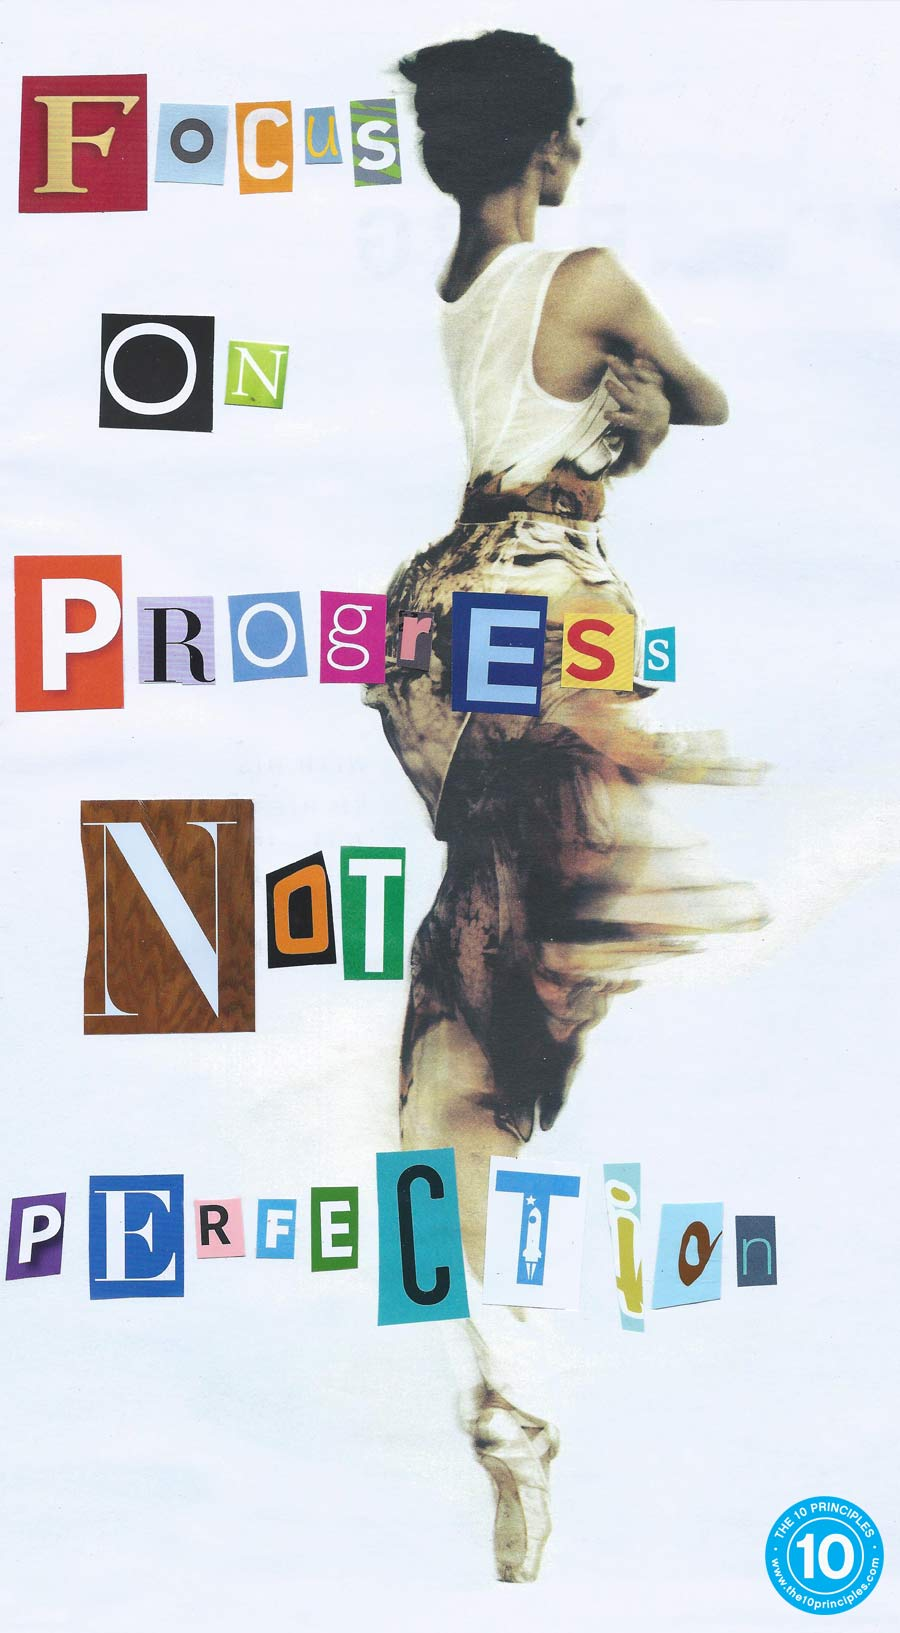 Diana's bulimia - Focus on progress not perfection